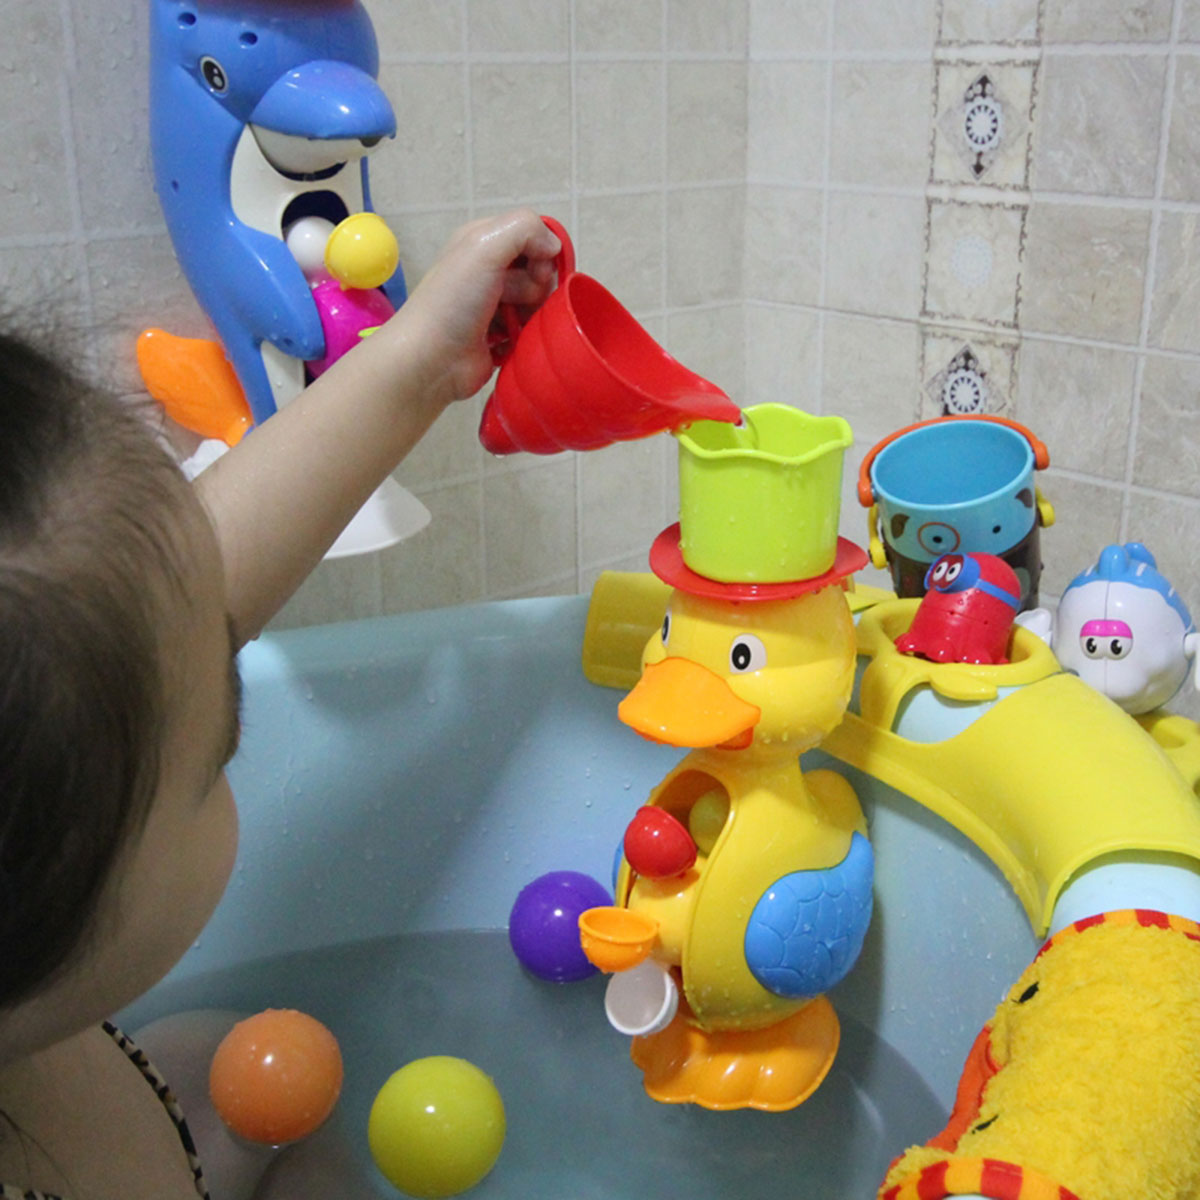 LCLL-1Pcs Bathroom Baby Kids Toddler Bathing Water Spraying Tool Bath Bathtub Duck Toys